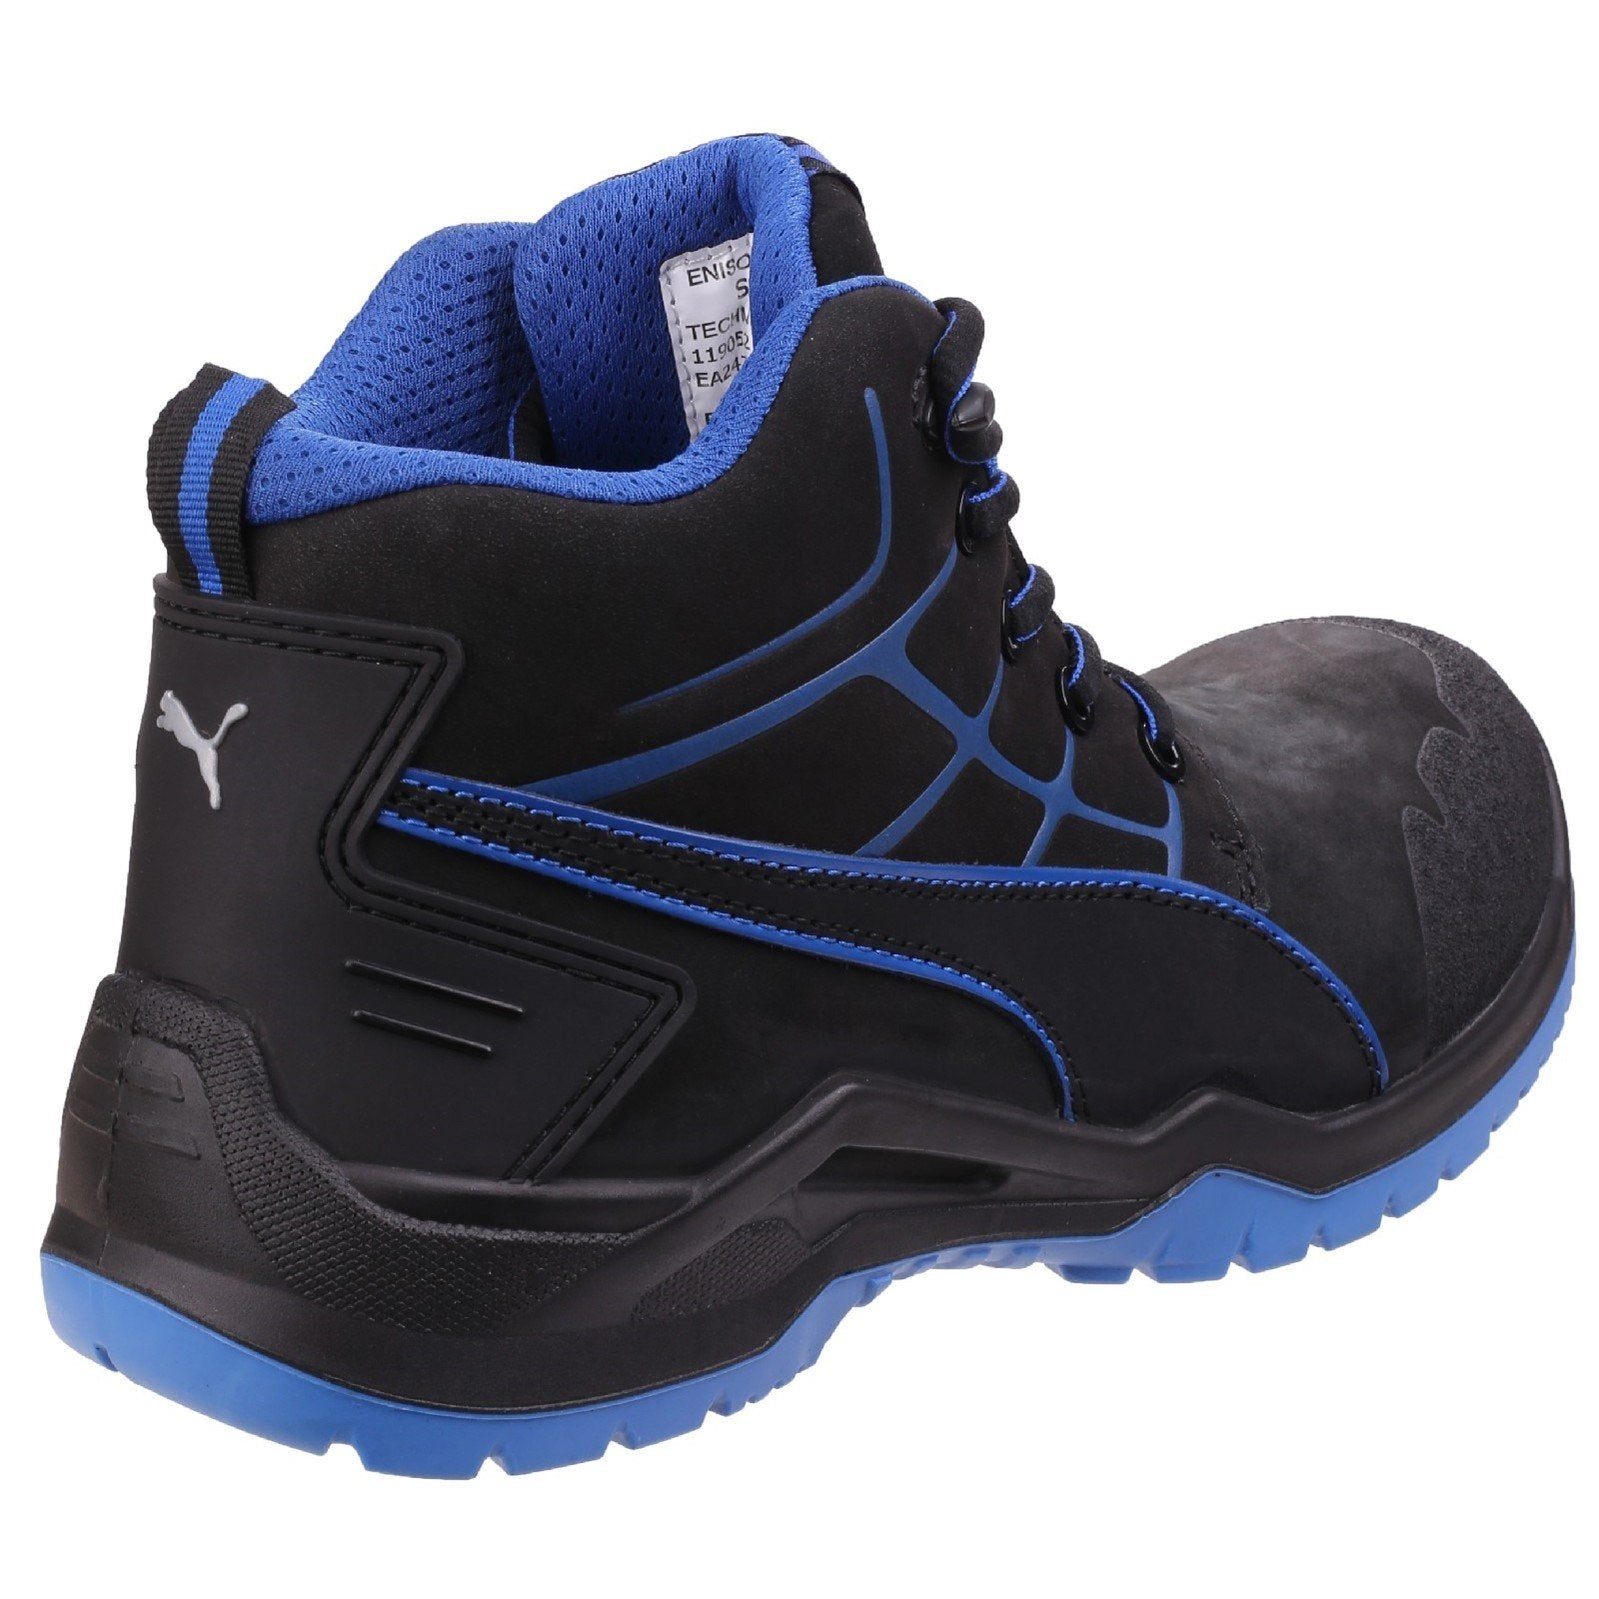 Puma Safety Krypton Boots